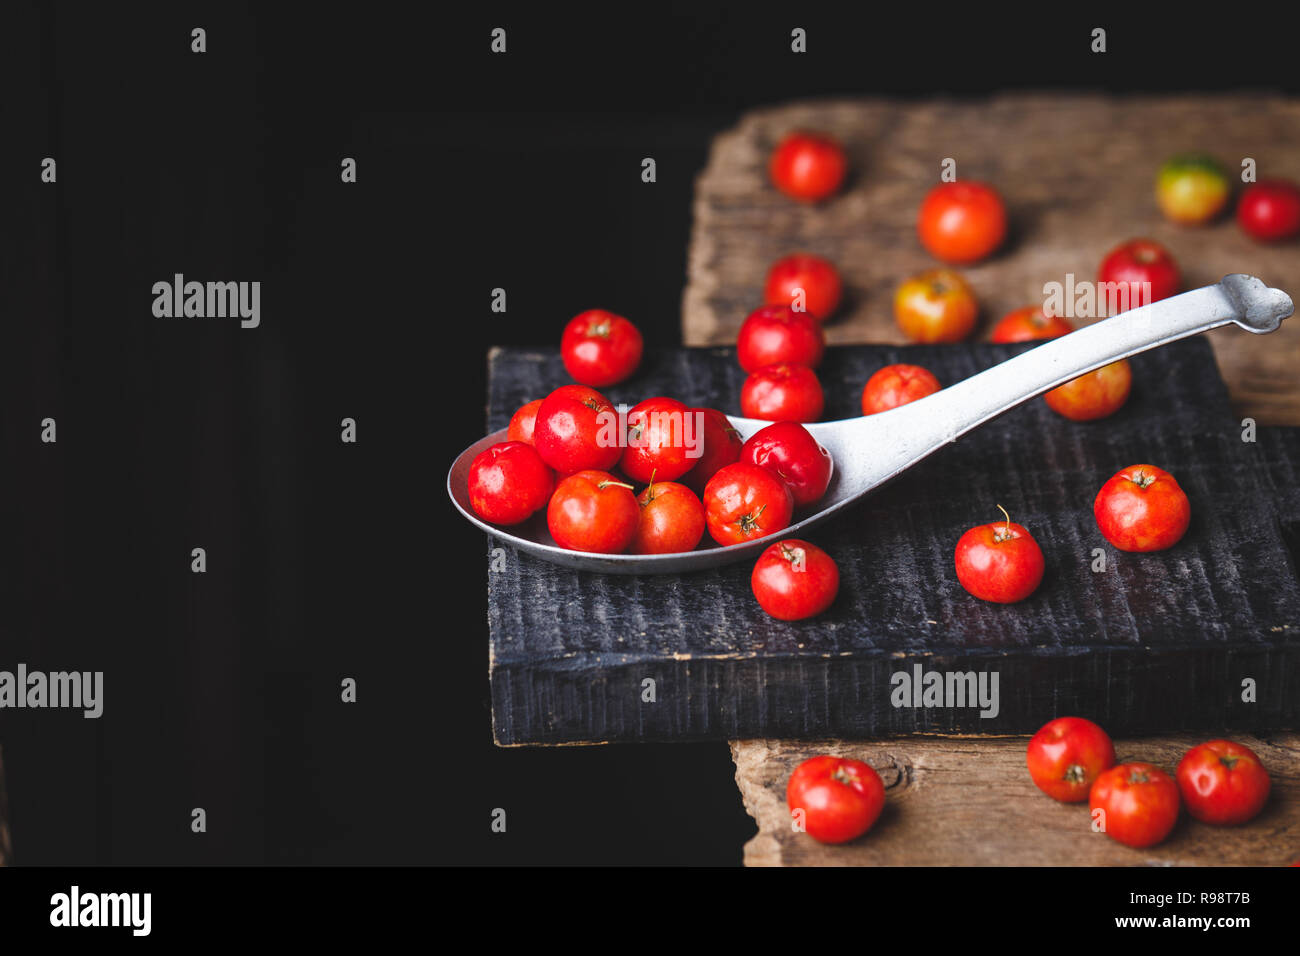 Barbados Cherry fruits - Stock Image